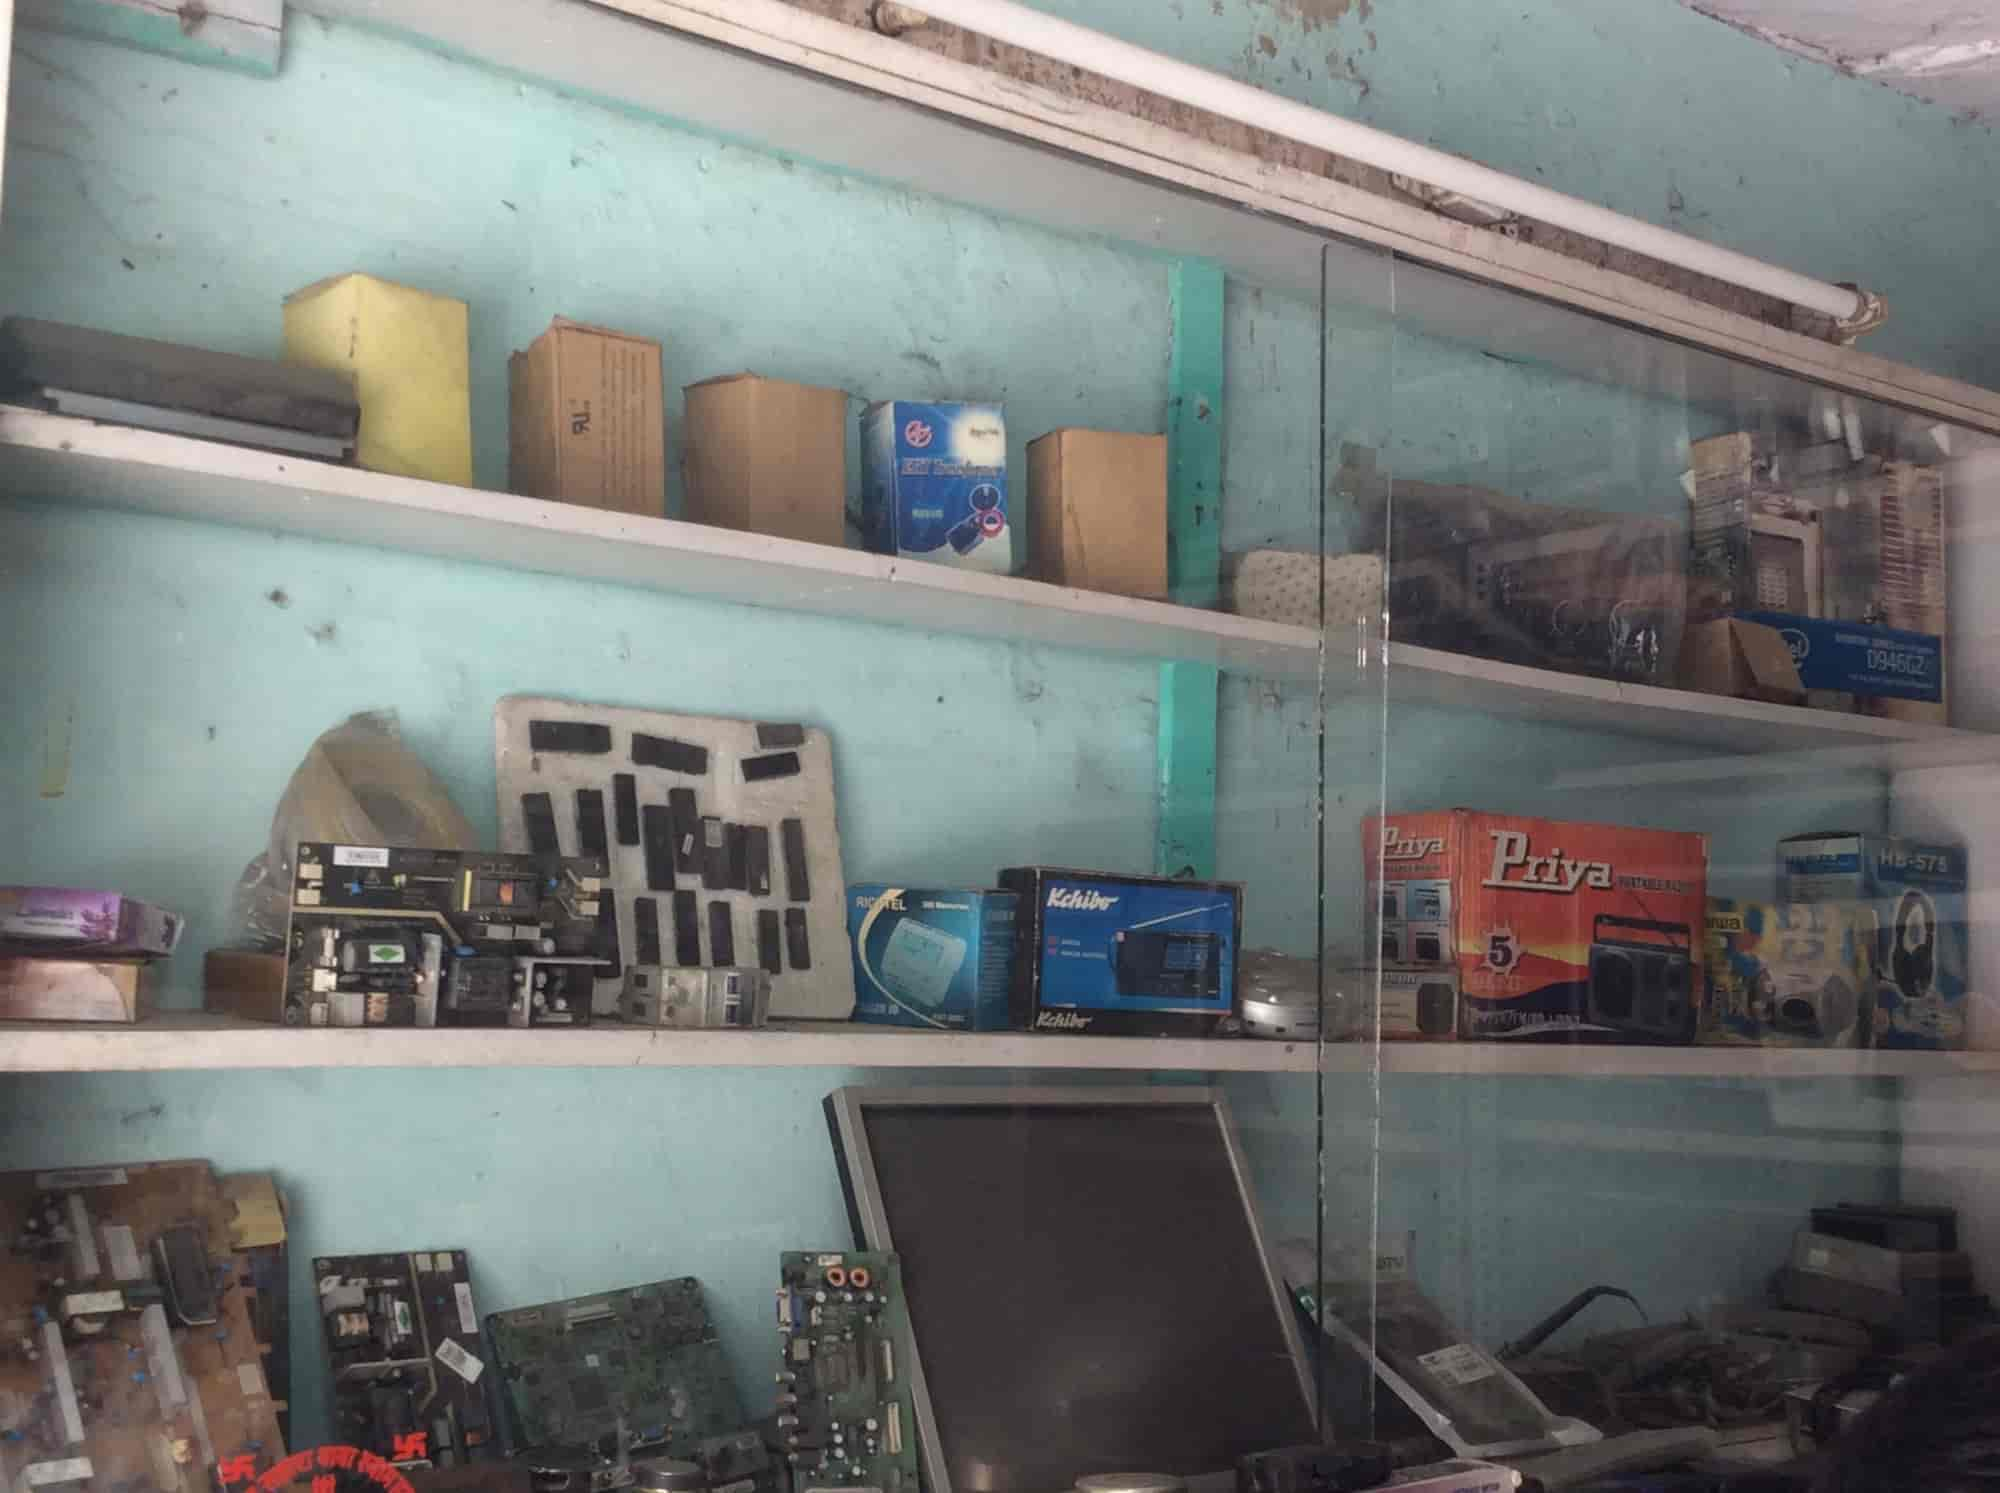 Jaks Electronics Photos, Sector 22, Noida- Pictures & Images Gallery ...